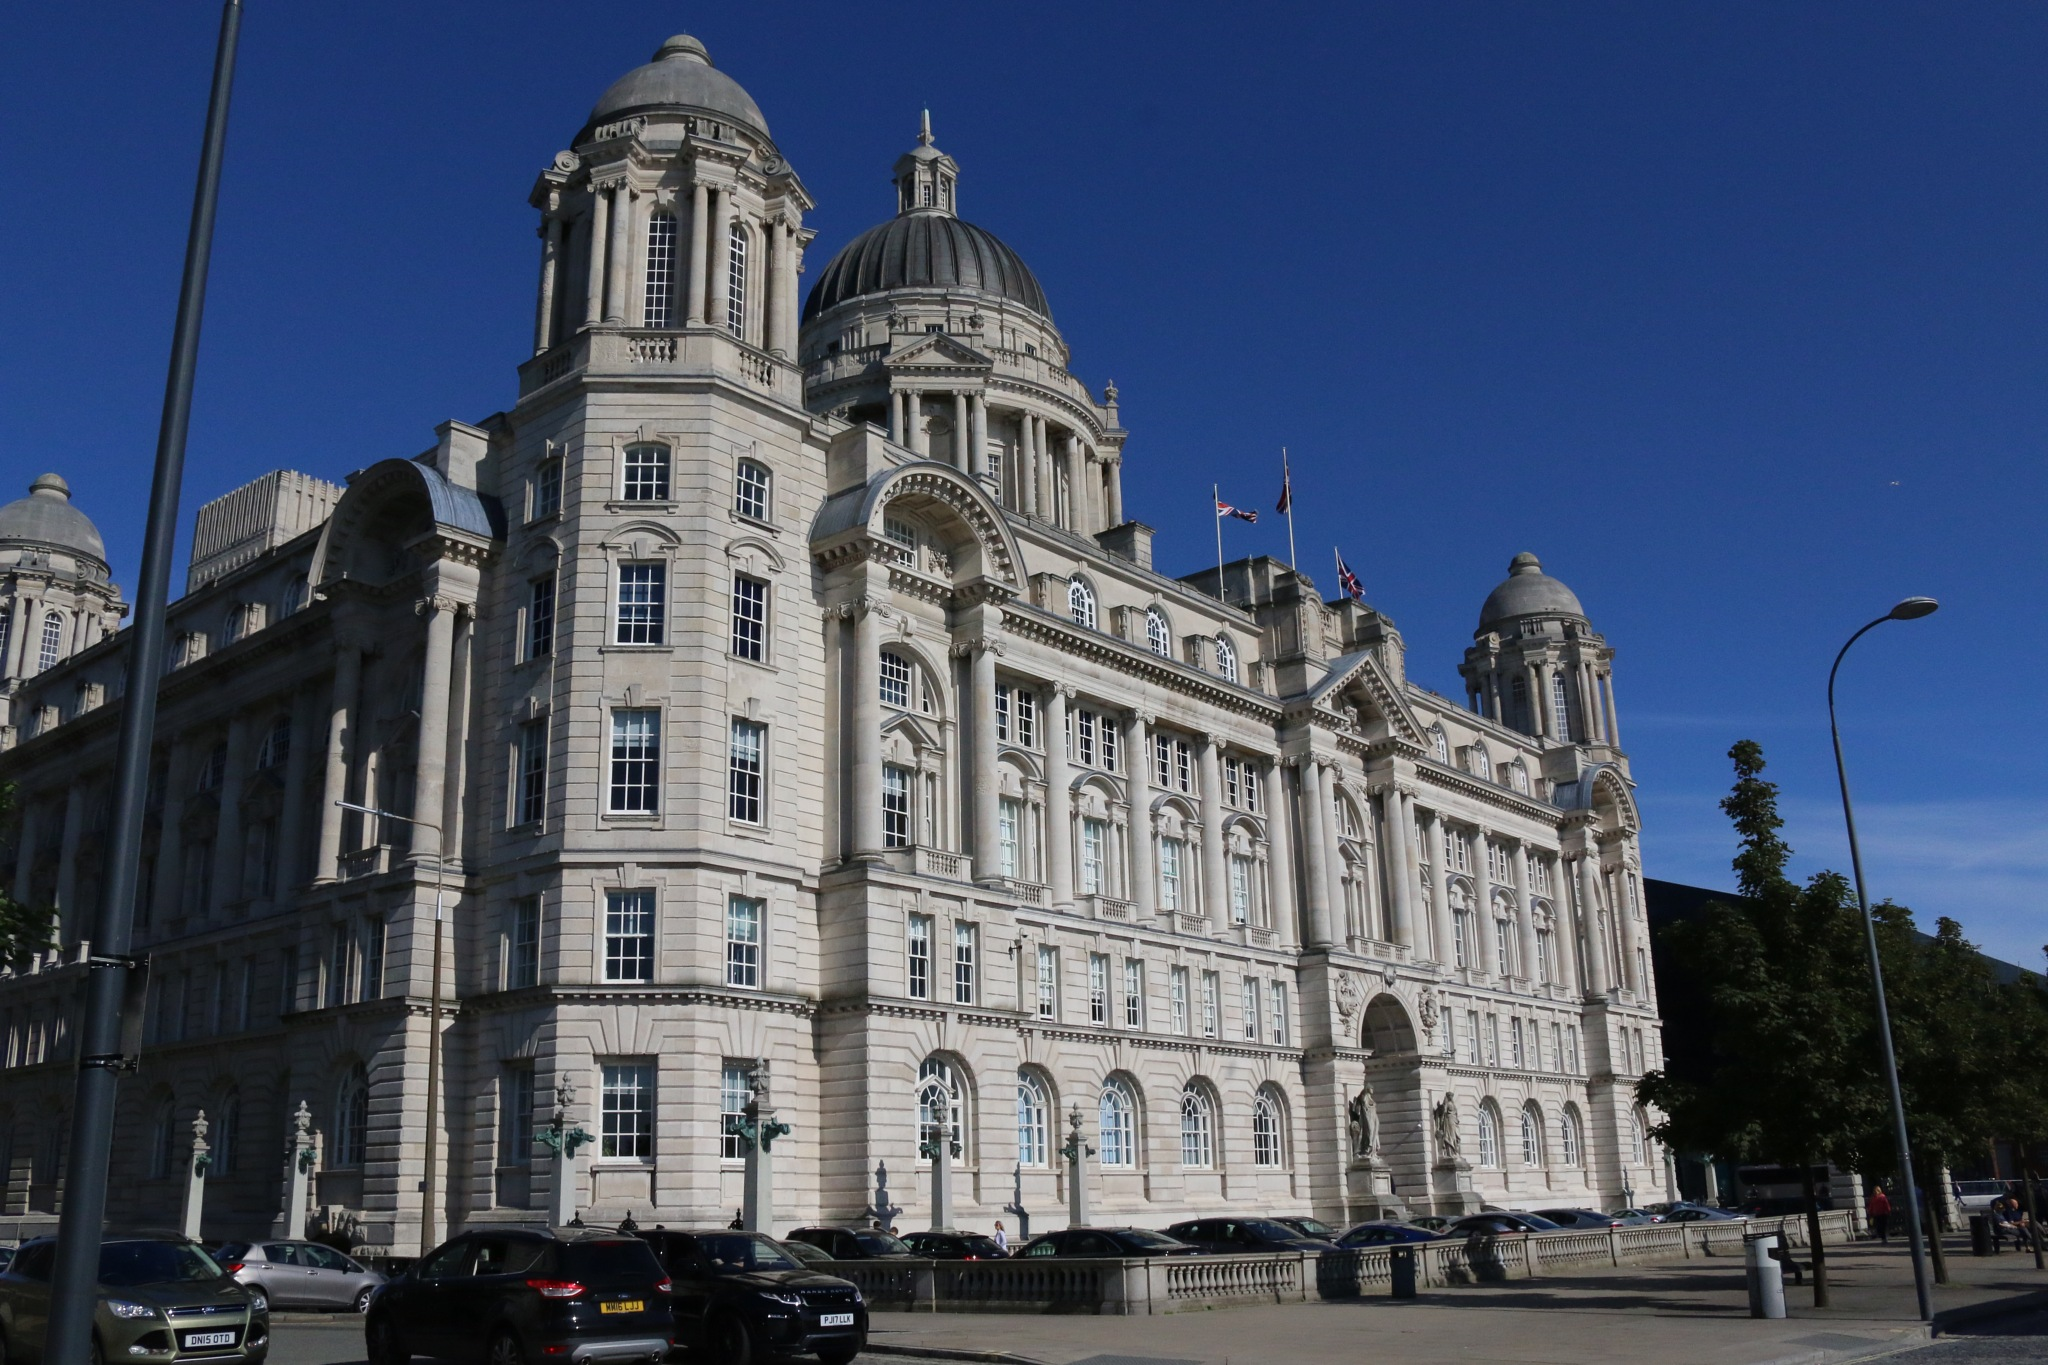 Port of Liverpool Building  by Kevhyde